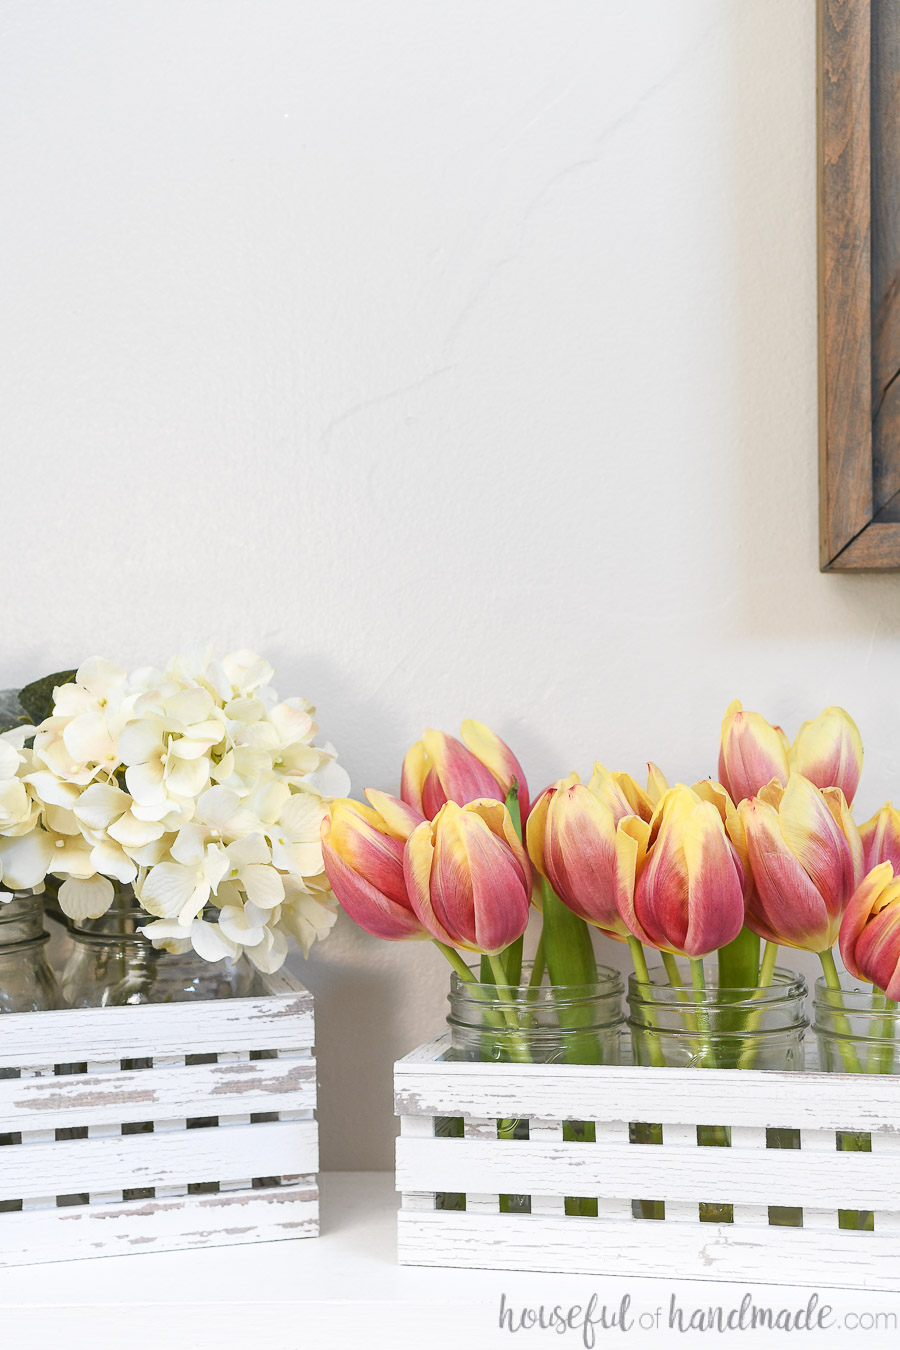 Decorative faux wood trough boxes with flowers in them for spring.